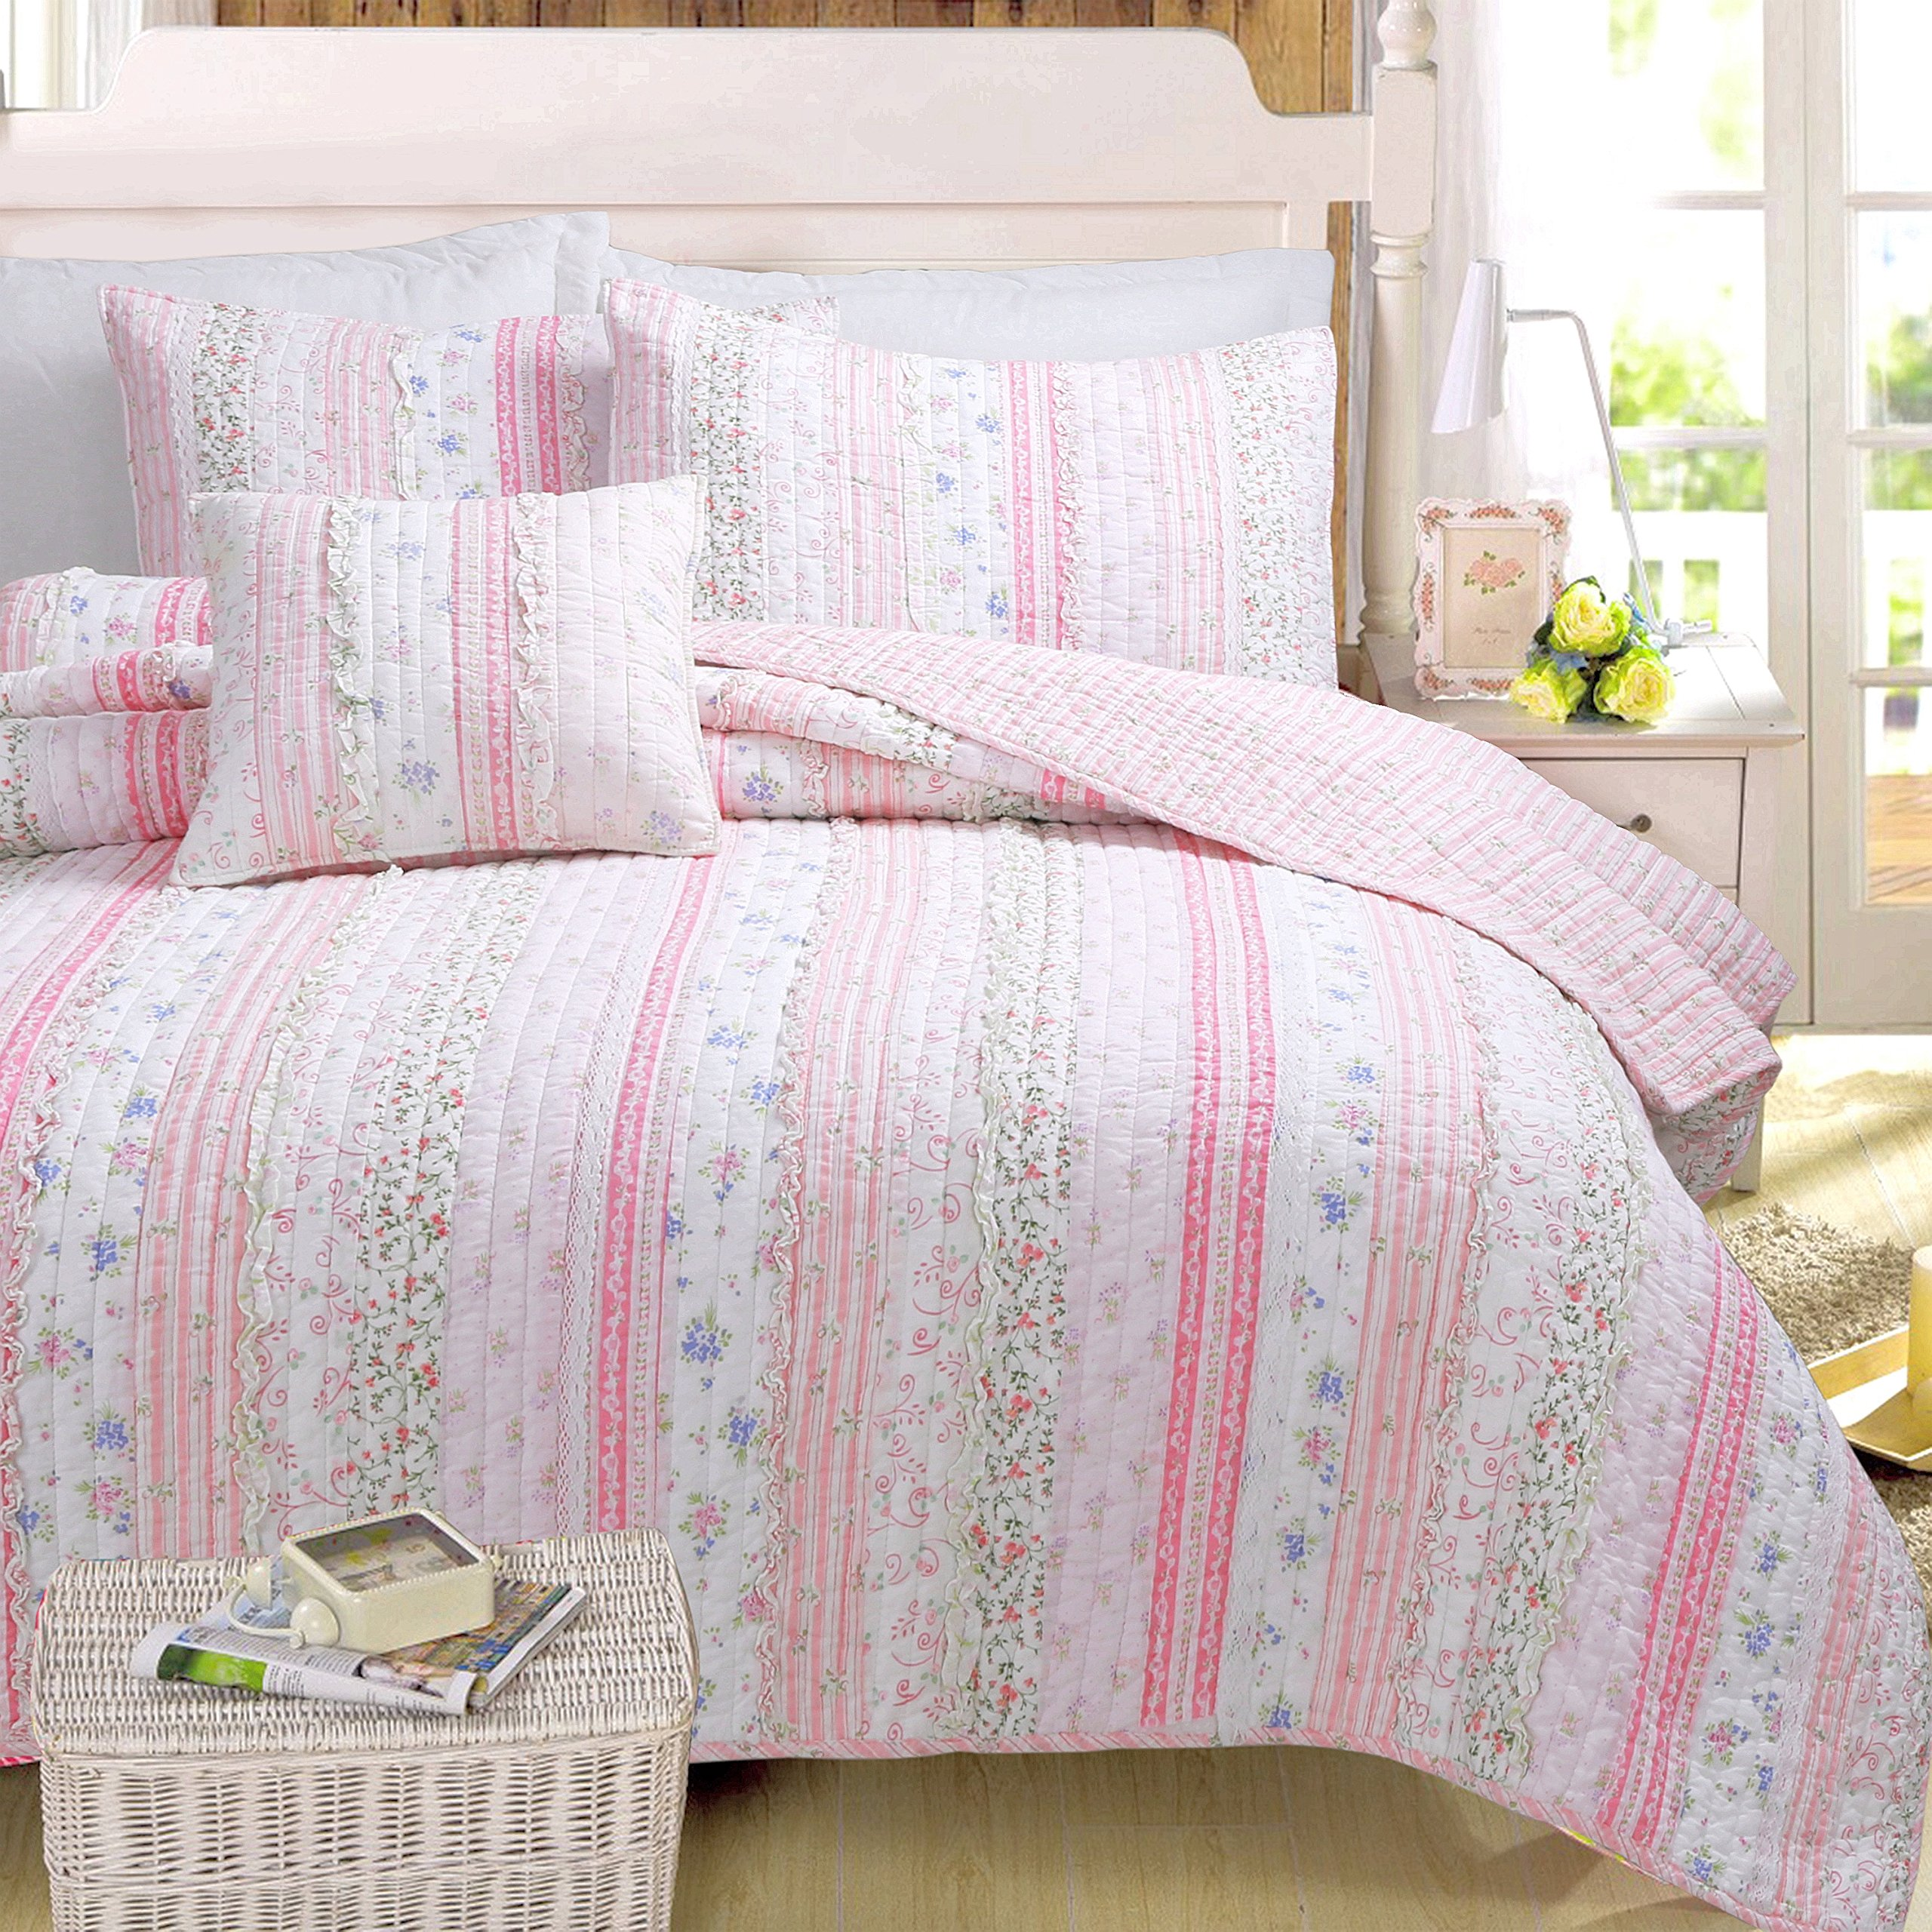 Cozy Line Home Fashions Pink Rose Romantic Chic Lace Bedding Quilt Set, Floral Flower Printed 3D Stripe 100% COTTON Reversible Coverlet Bedspread Gifts for Girls Women (Queen - 3 piece)